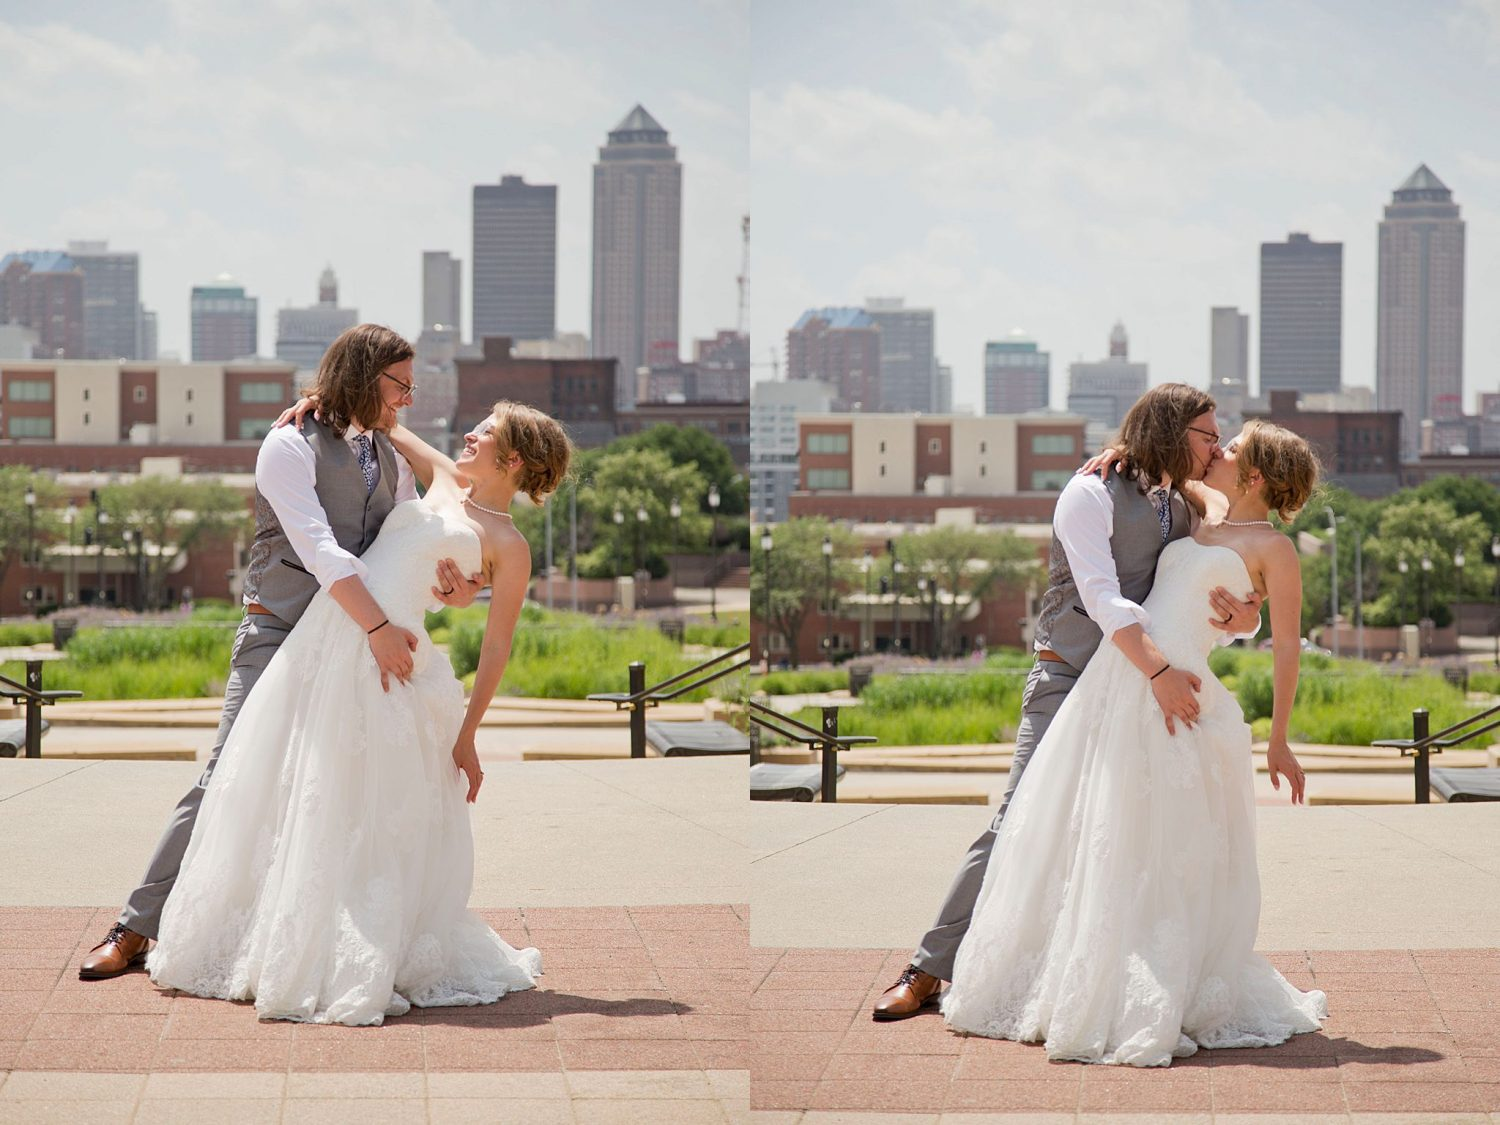 Bride and groom dipping back with the Des Moines skyline behind them.